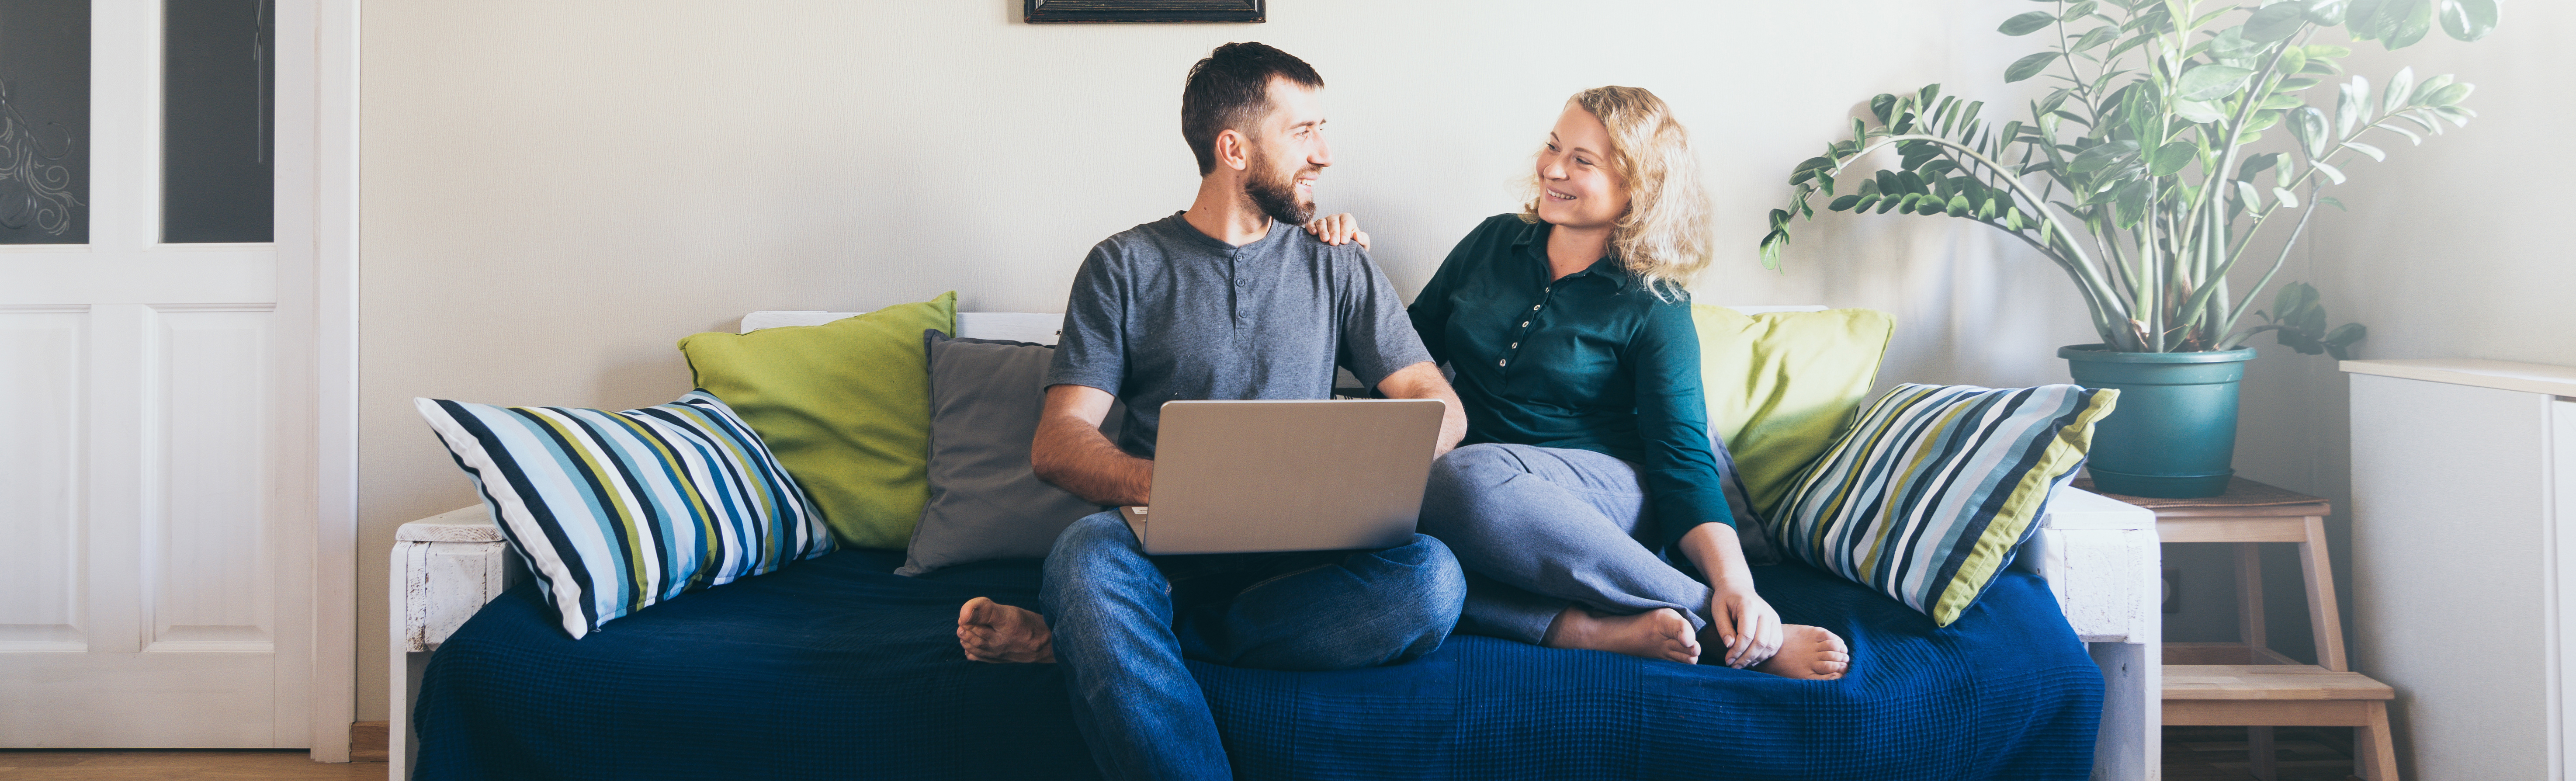 Separate Things Couples Can Do In Self-Isolation